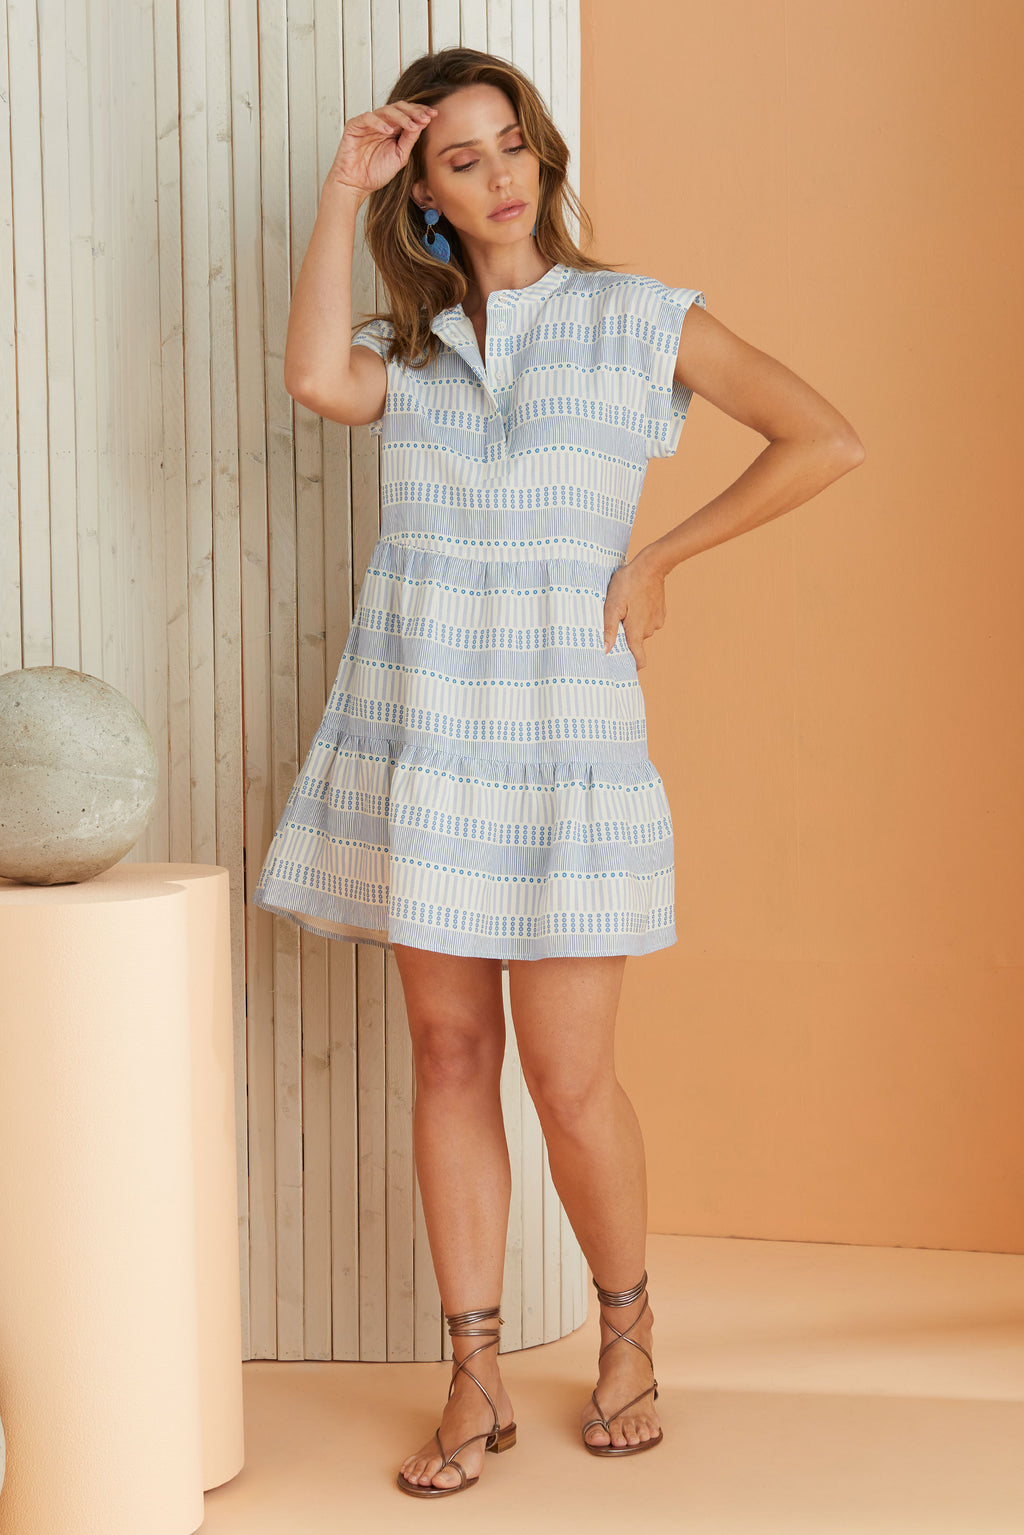 short sleeve summer dress in dot and line stripe pattern, hits above the knee